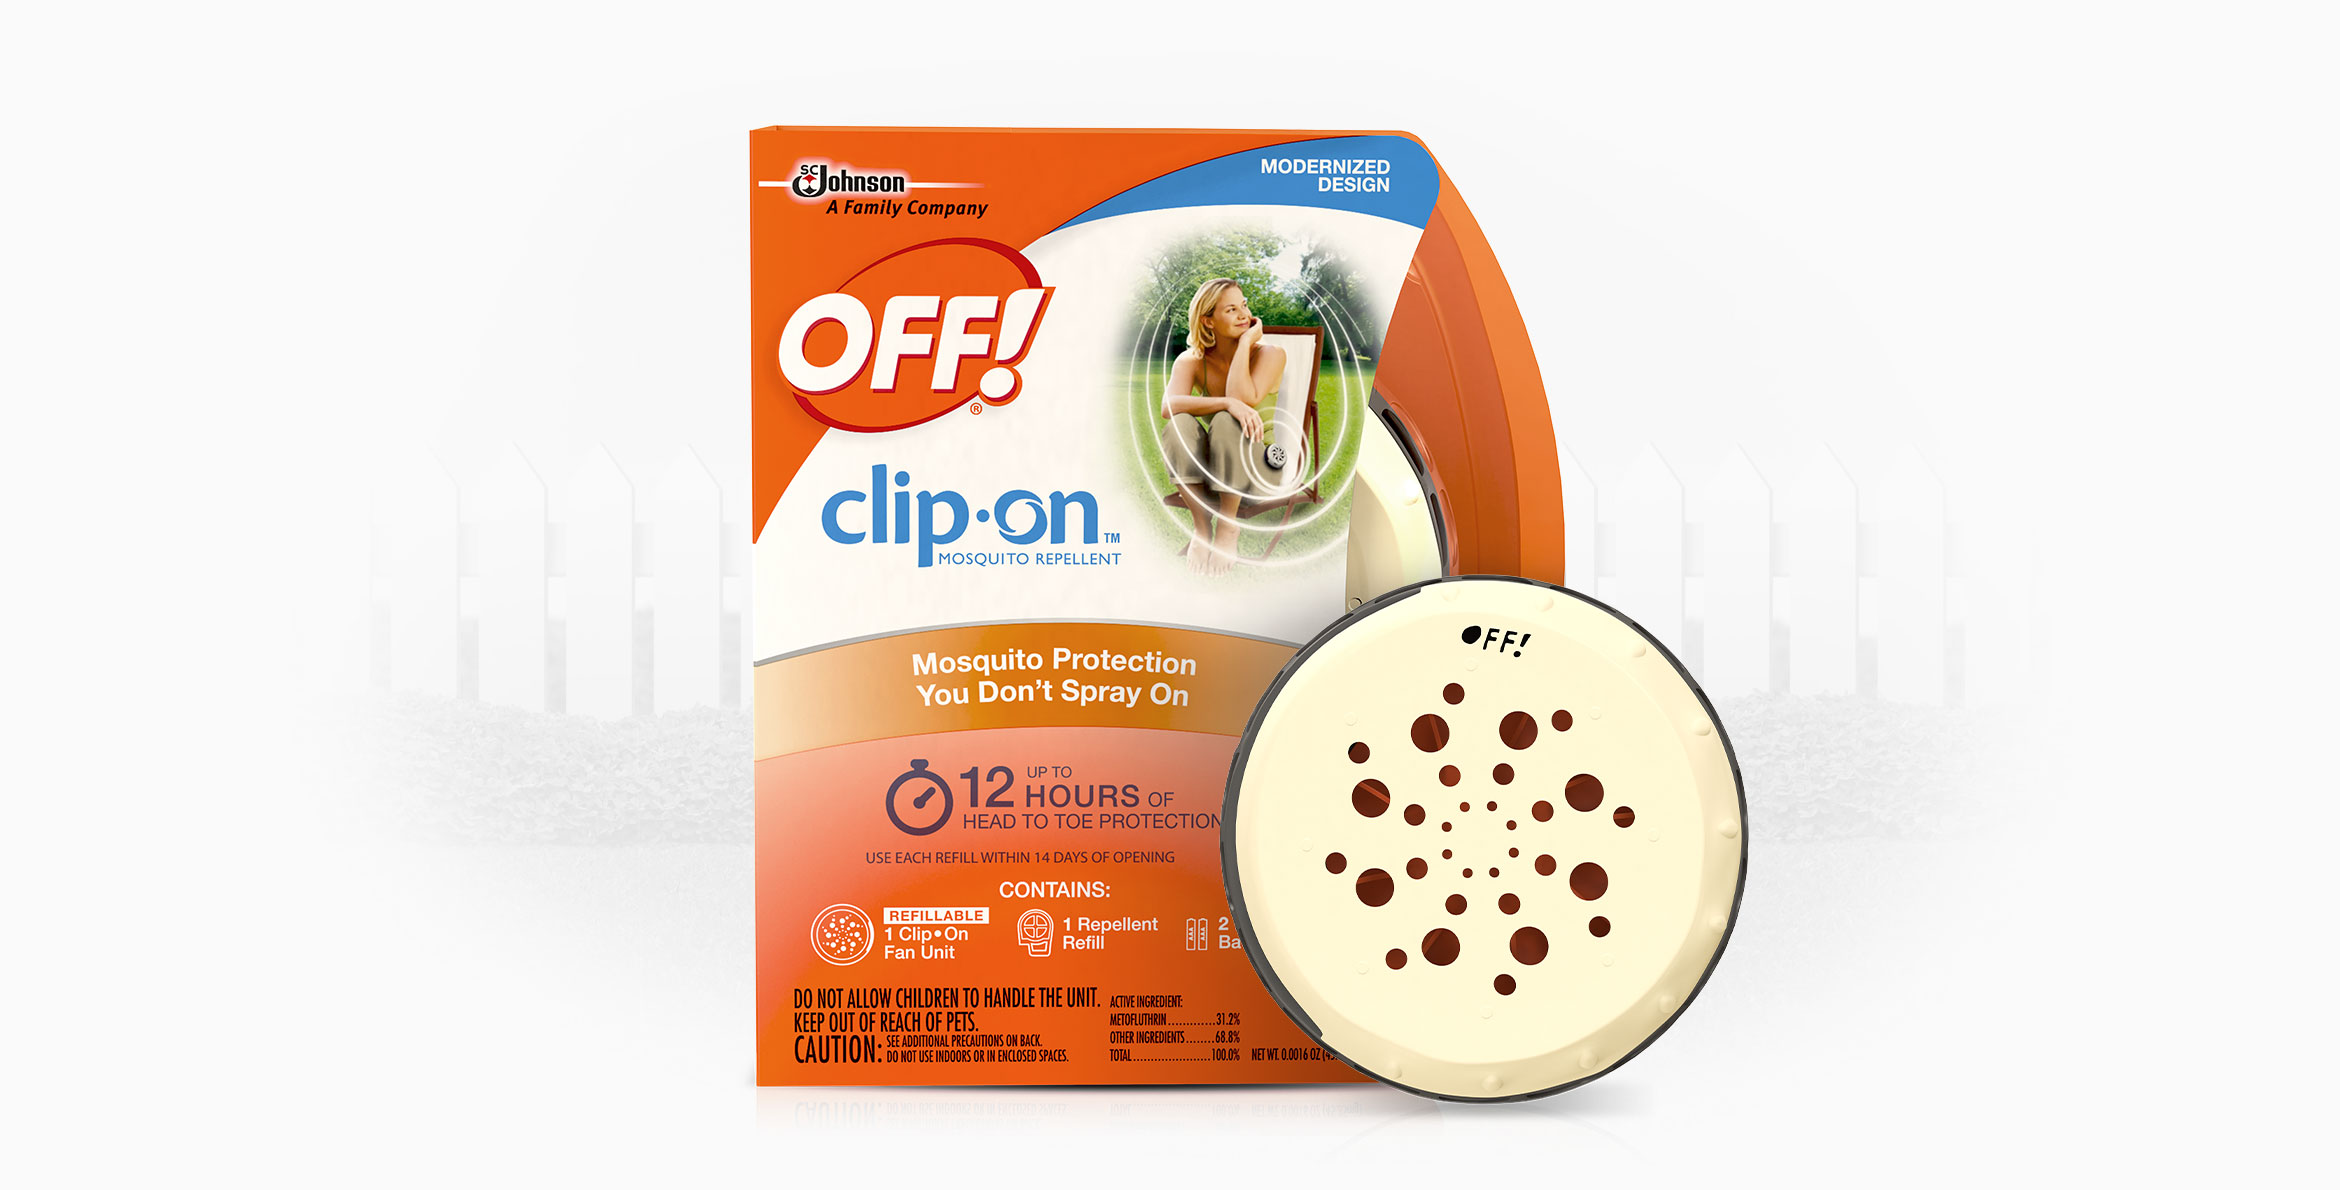 OFF!® Clip On™ Mosquito Repellent